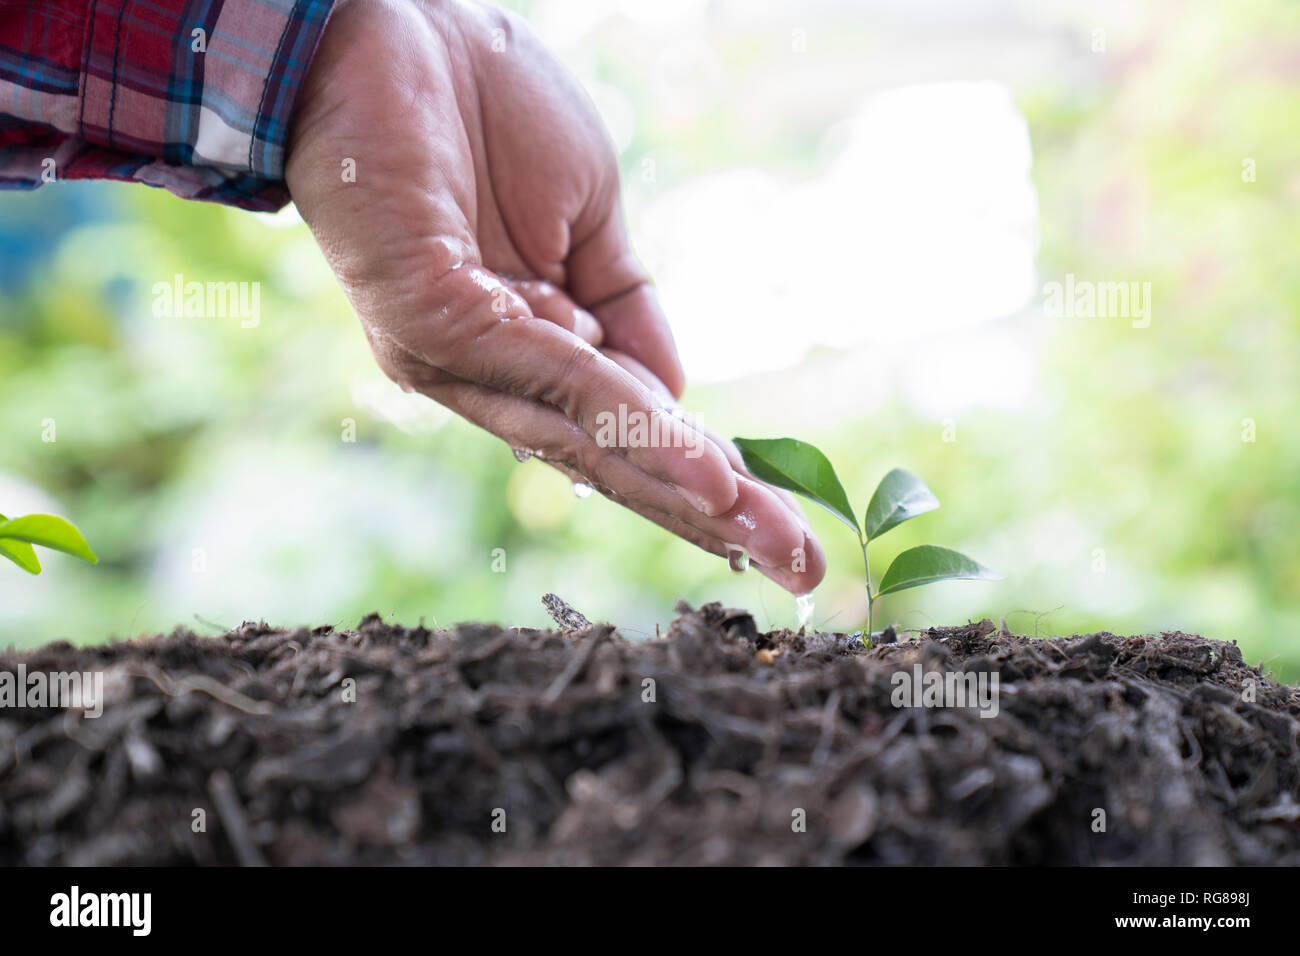 Man hand watering a young plant - Image - Stock Image